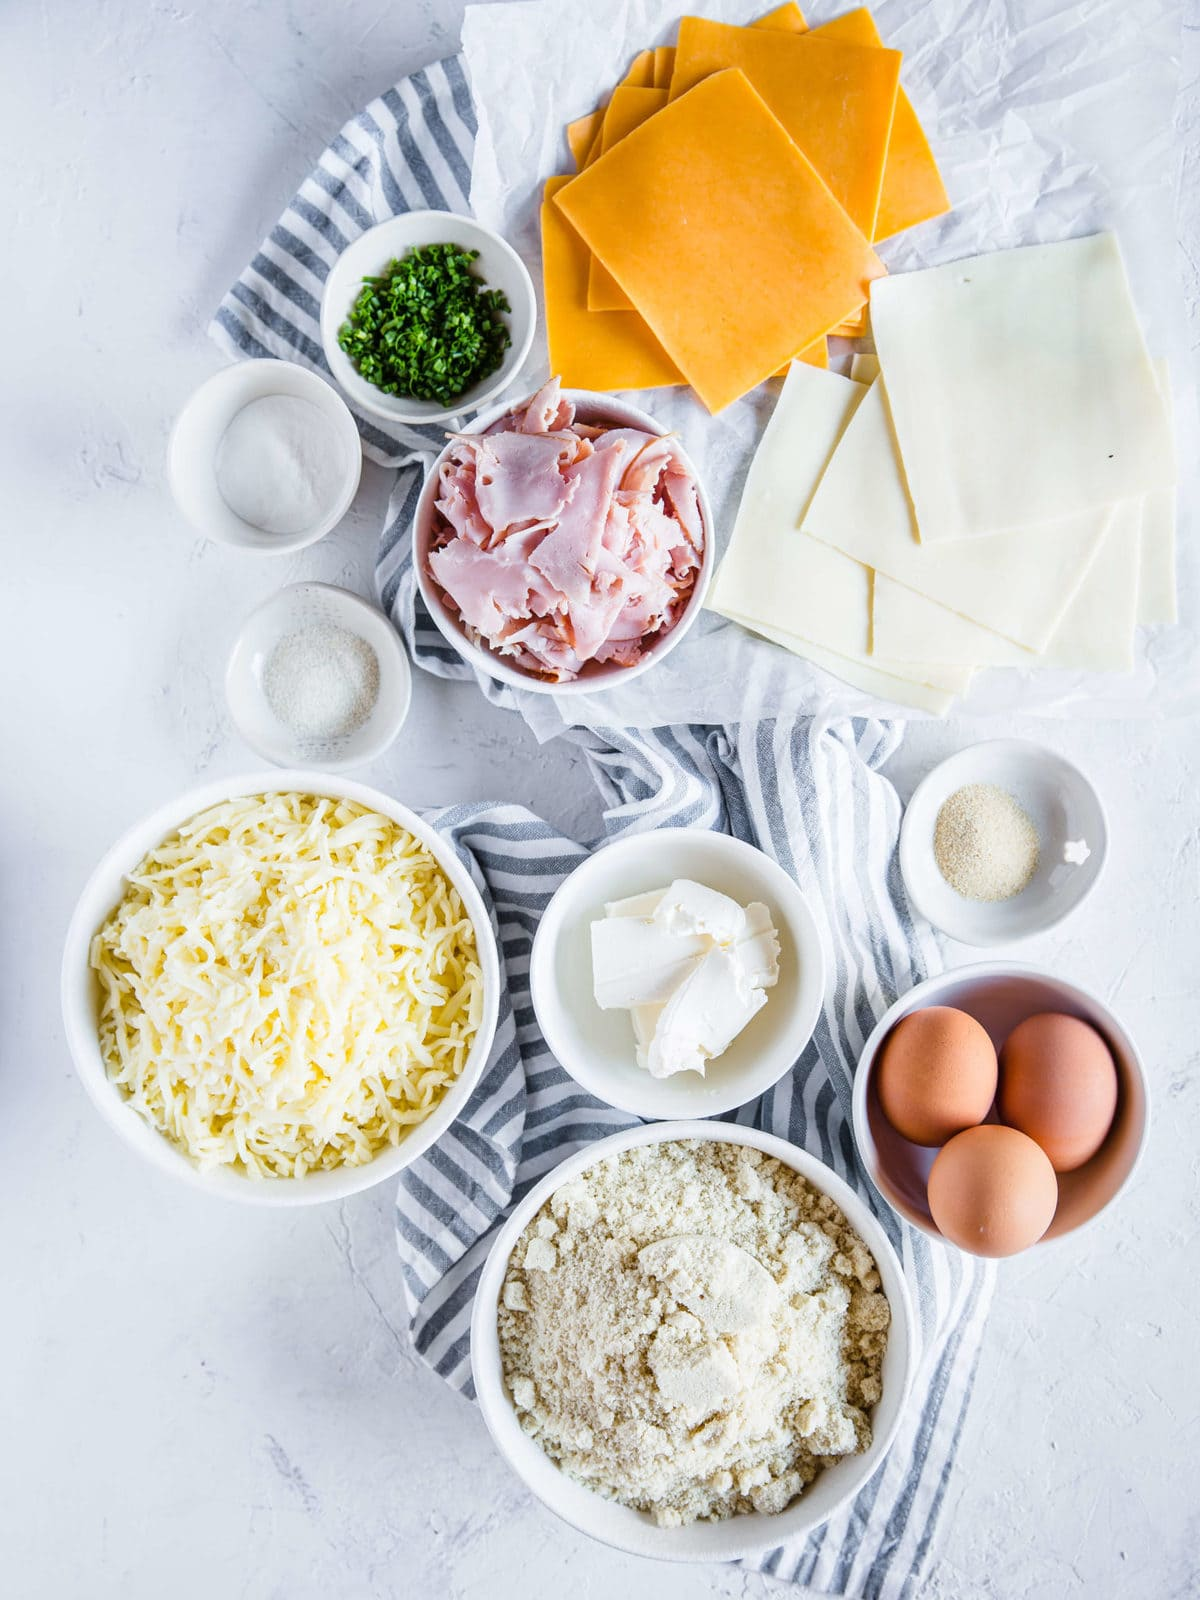 All of the ingredients to make fathead dough, plus ham, cheese, and chives to stuff Ham and Cheese Keto Hot Pockets